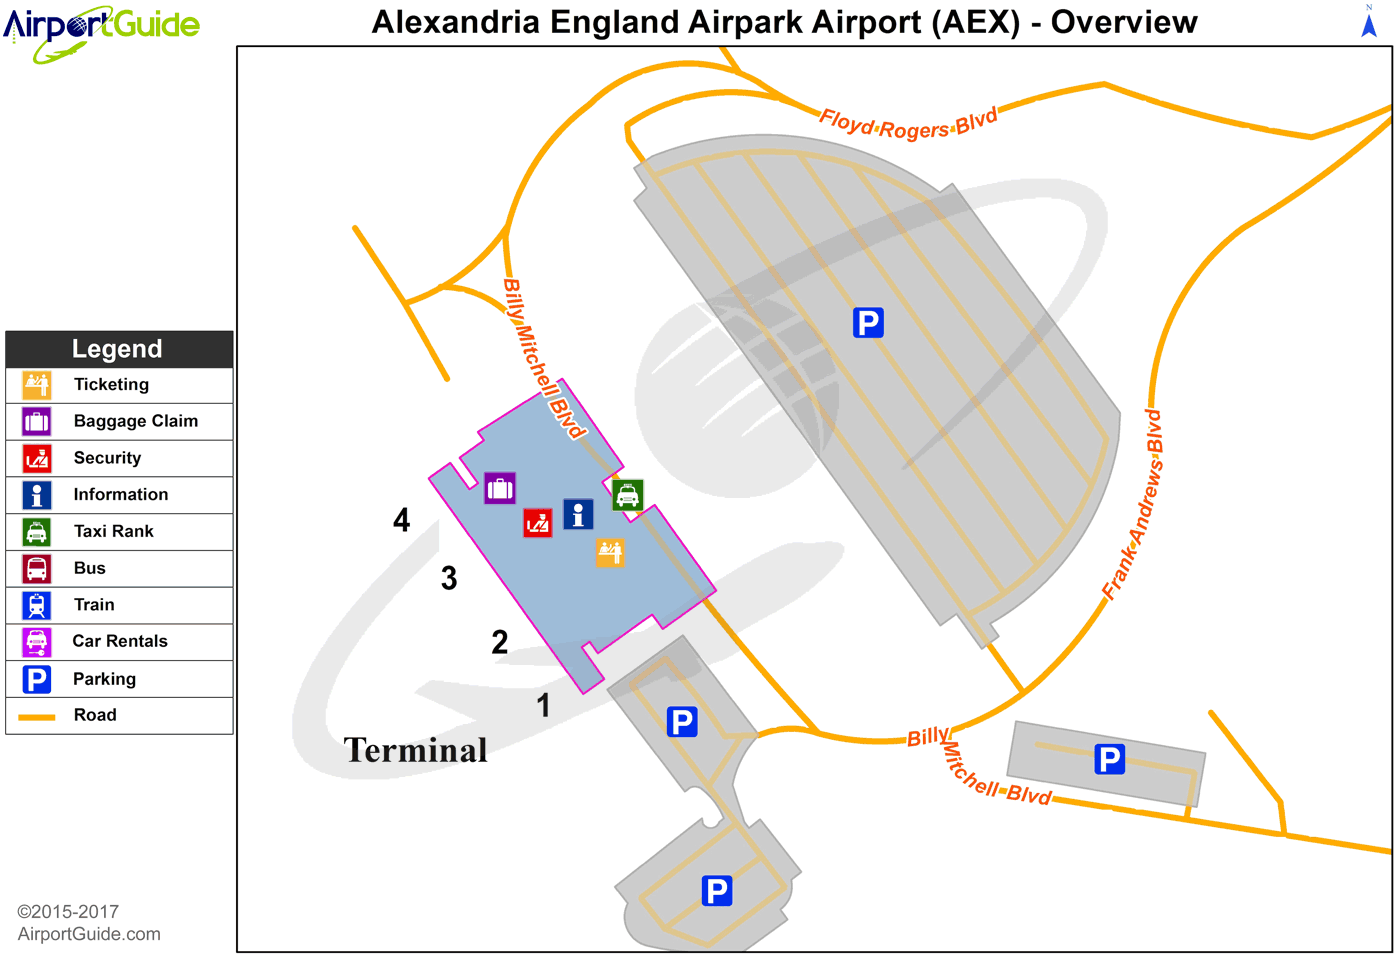 Alexandria - Alexandria International (AEX) Airport Terminal Map - Overview